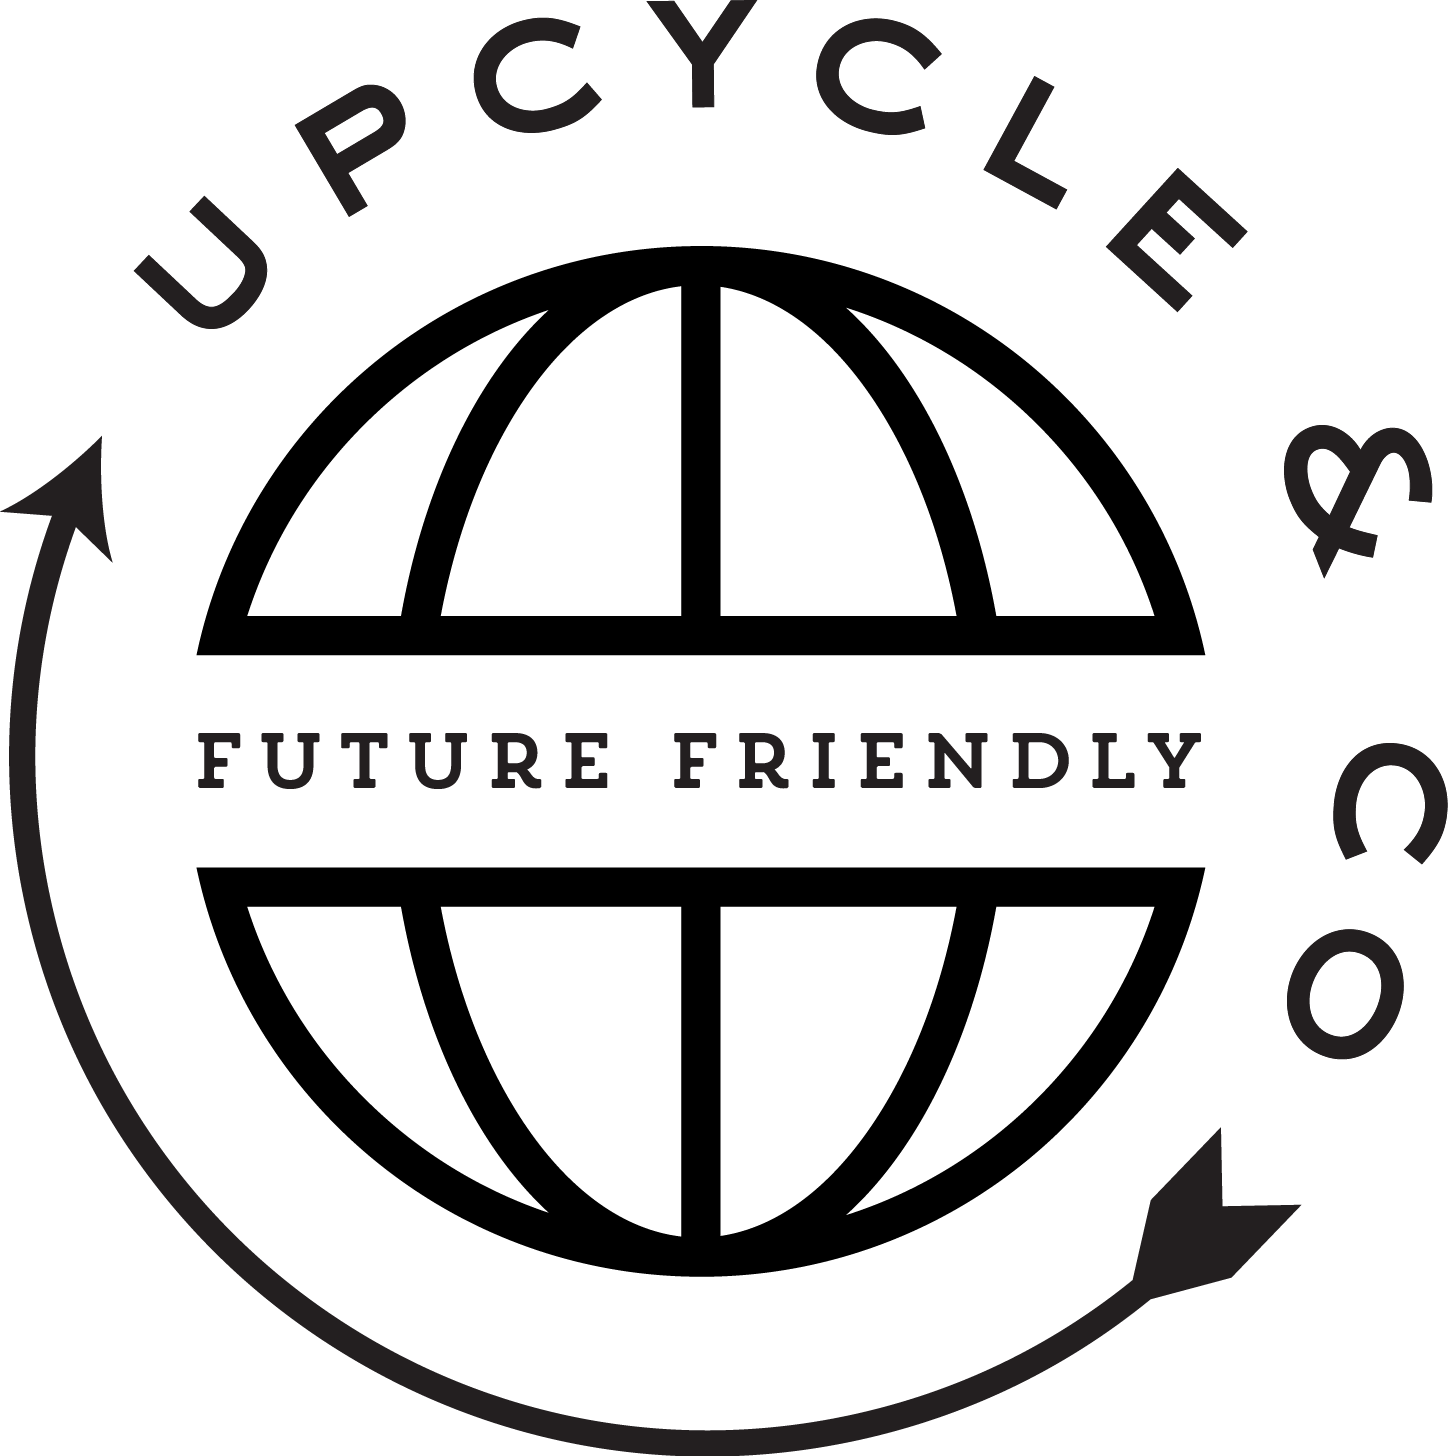 Upcycle & Co